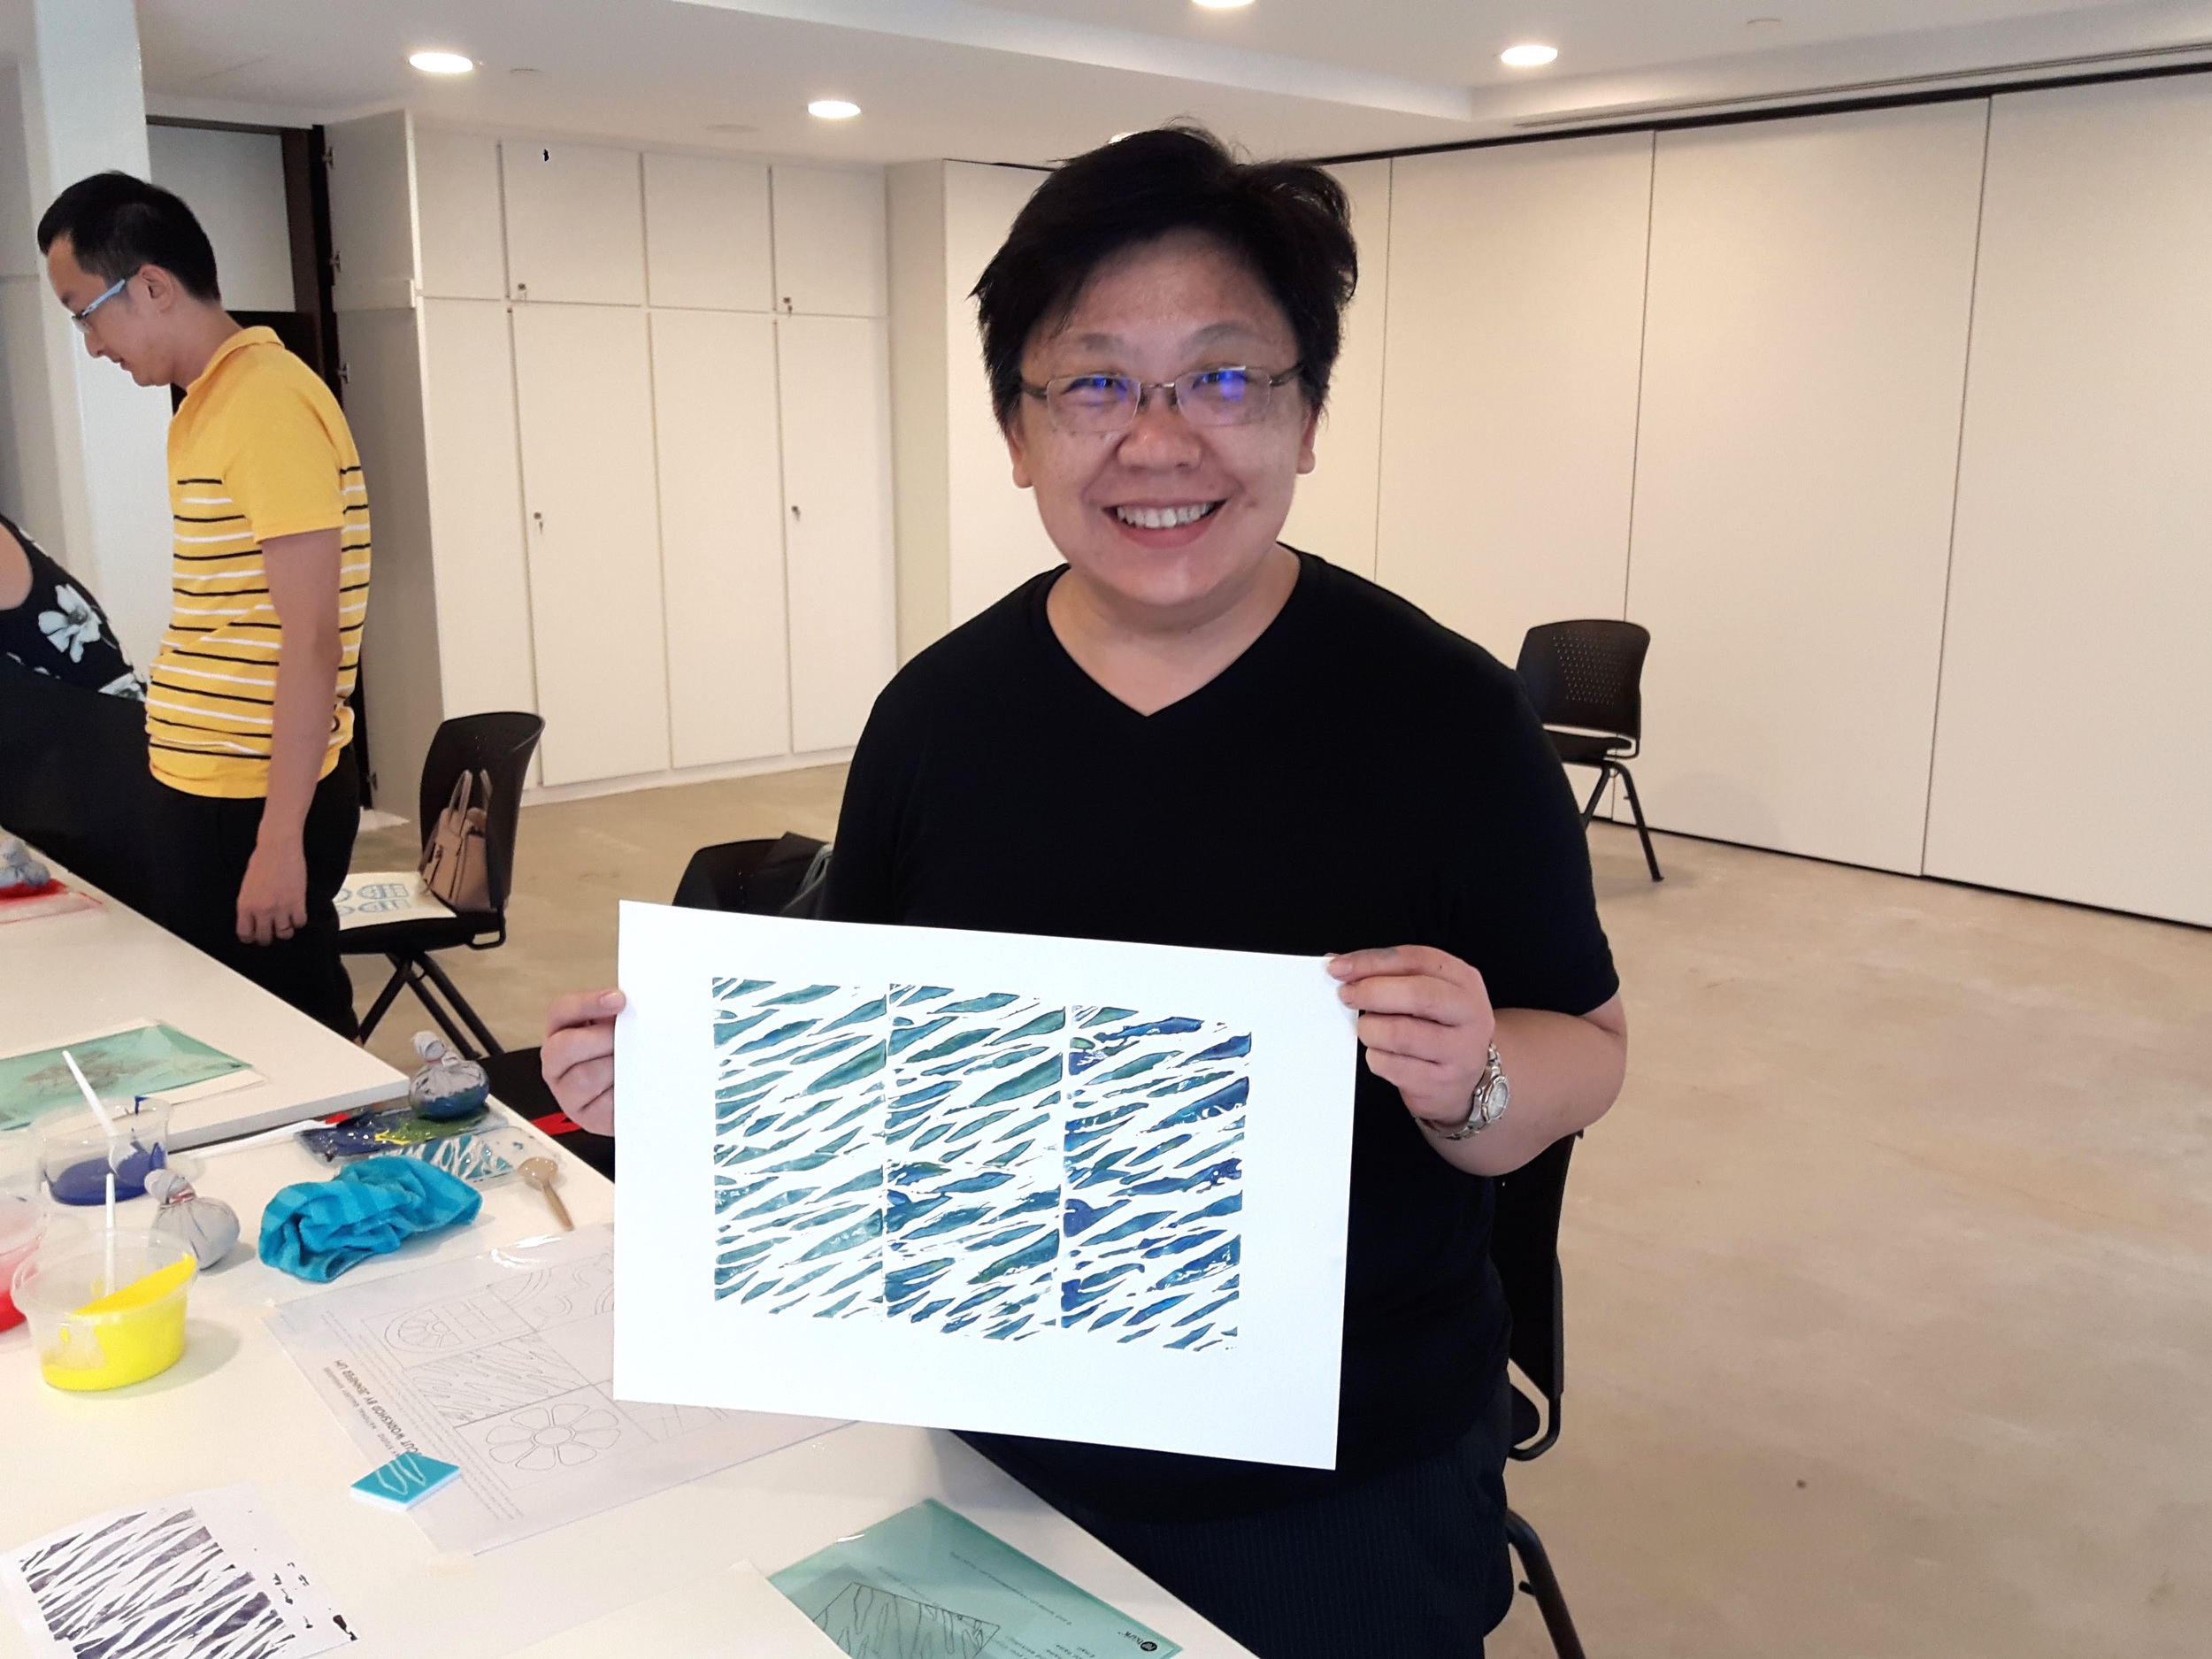 National_Gallery_Singapore_Linocut_Jennifer_Lim_34.jpg